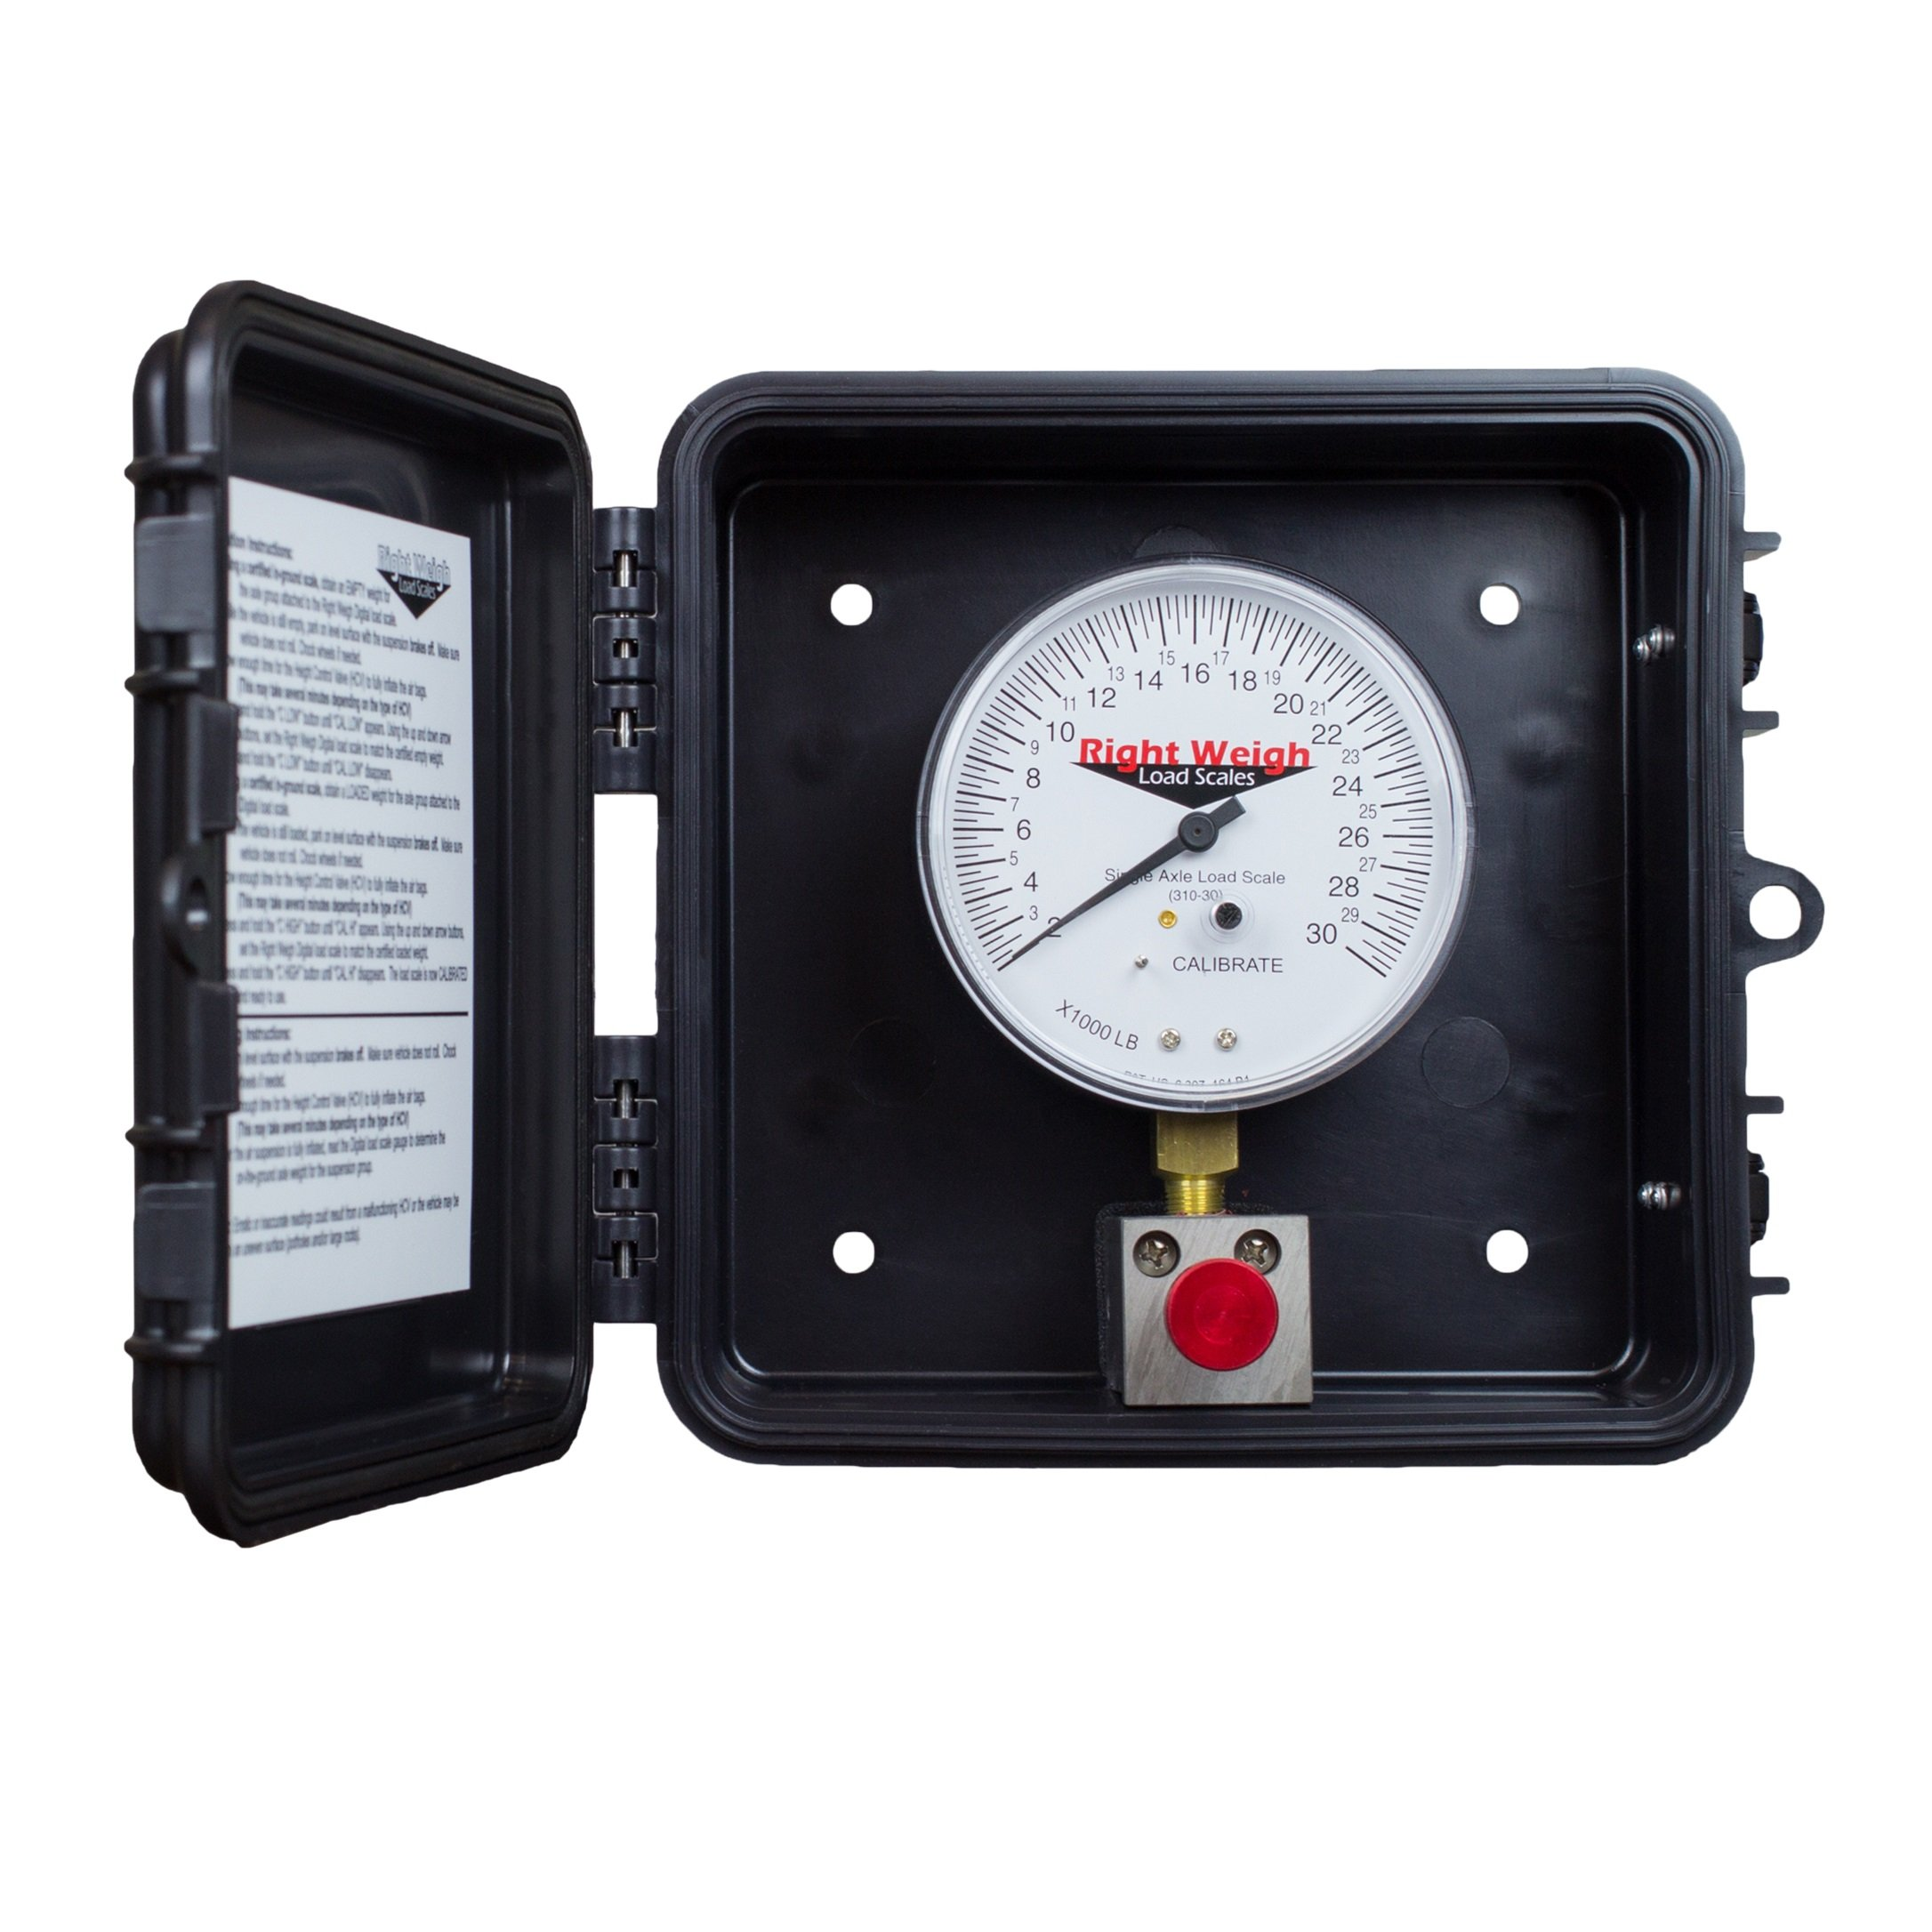 310-30-PP Single-Axle Exterior Analog Load Scale - for Single Height Control Valve Air Suspensions